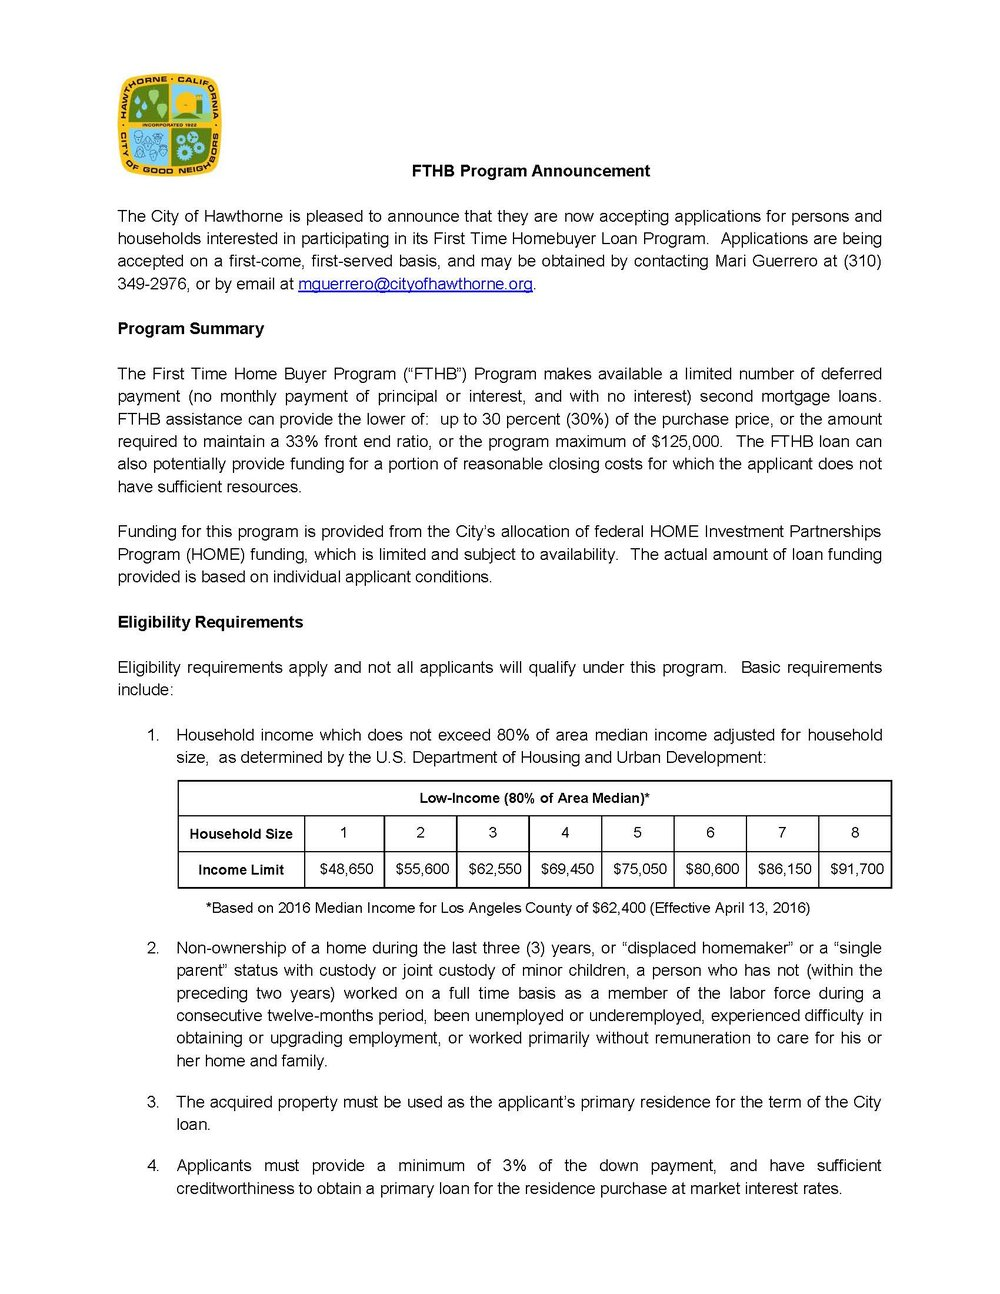 First Time Home Buyer Program Announcement Page 1